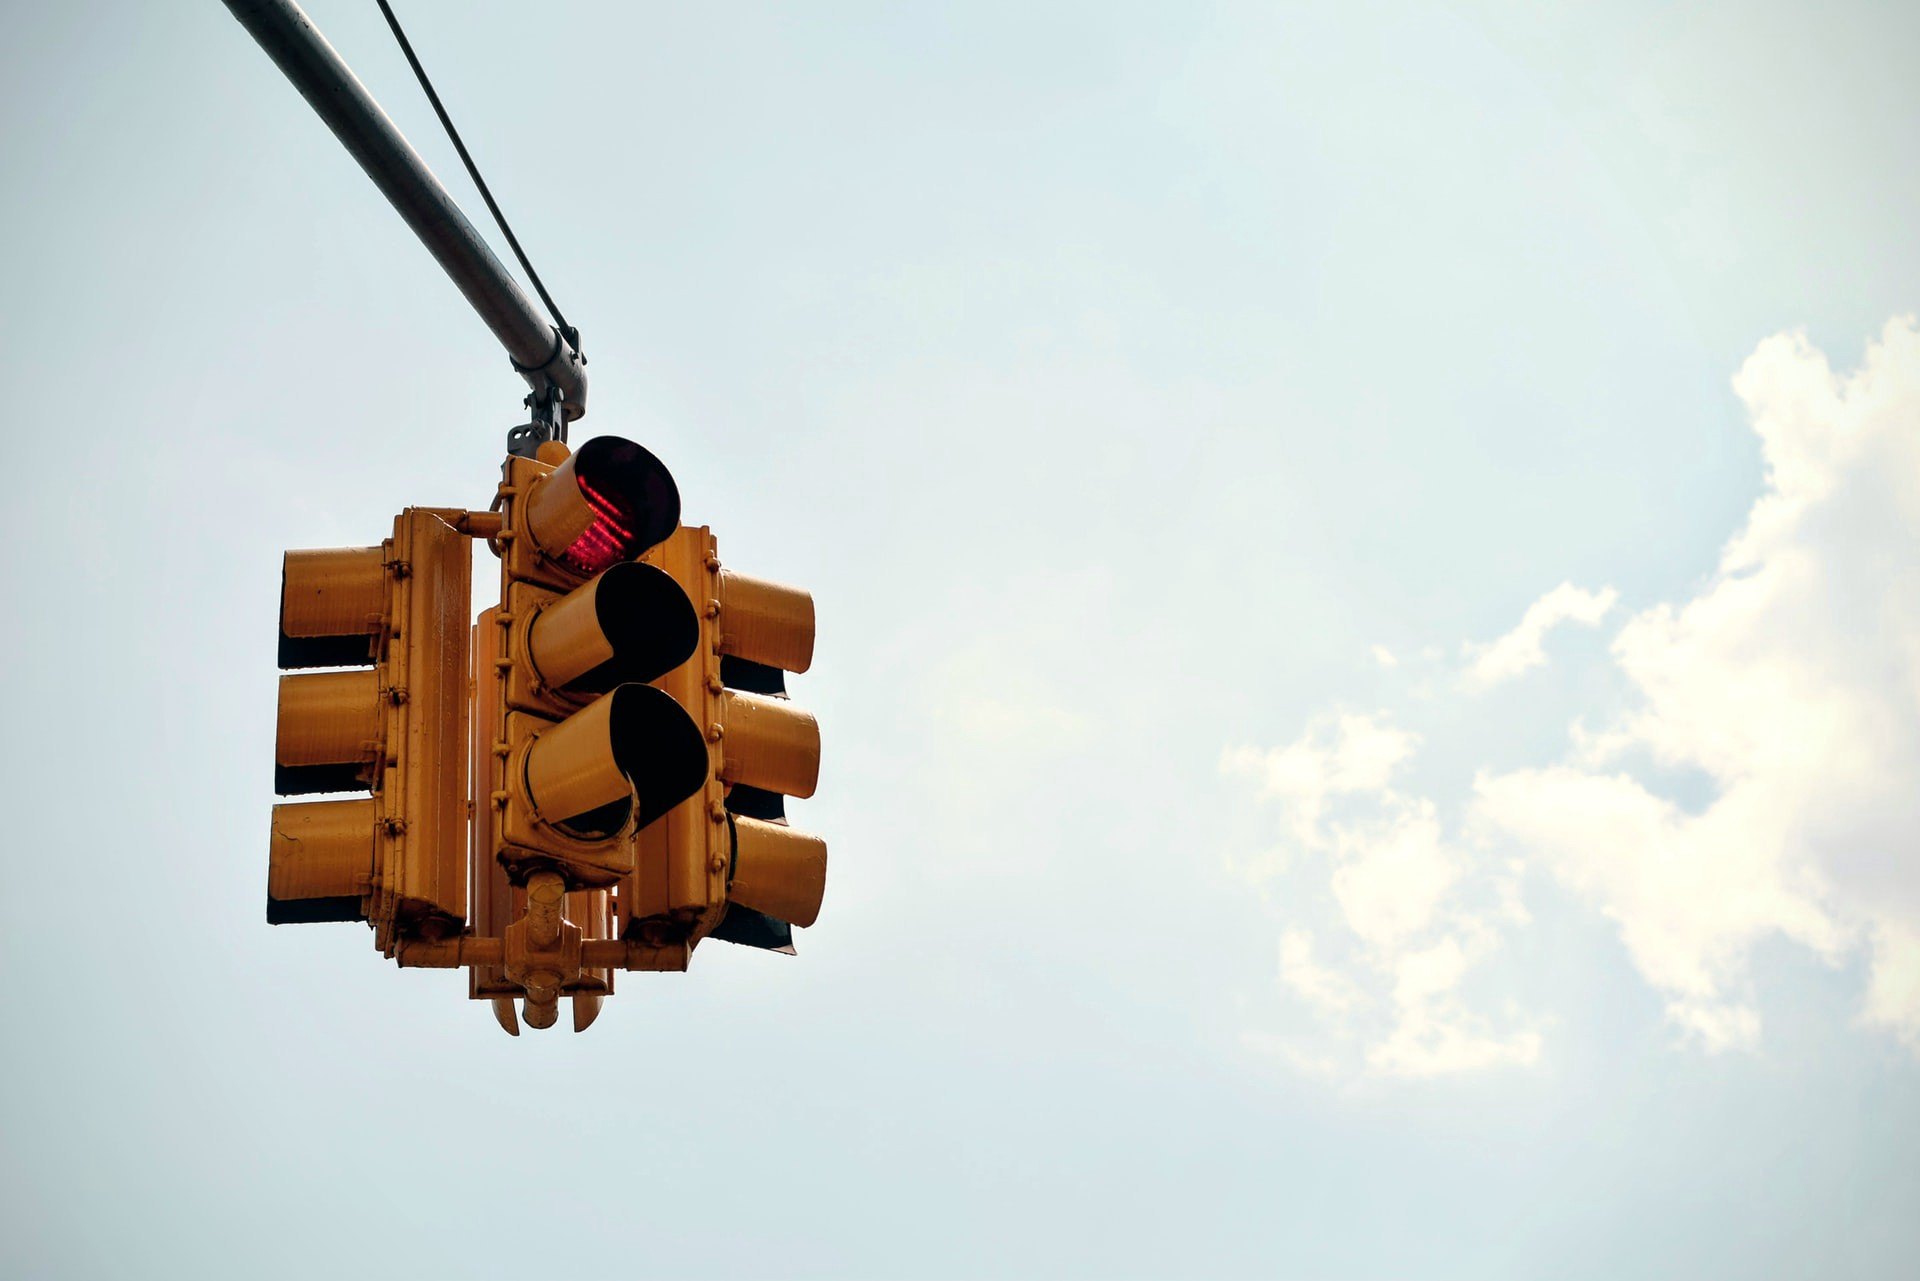 Stop light with the top, red light illuminated.